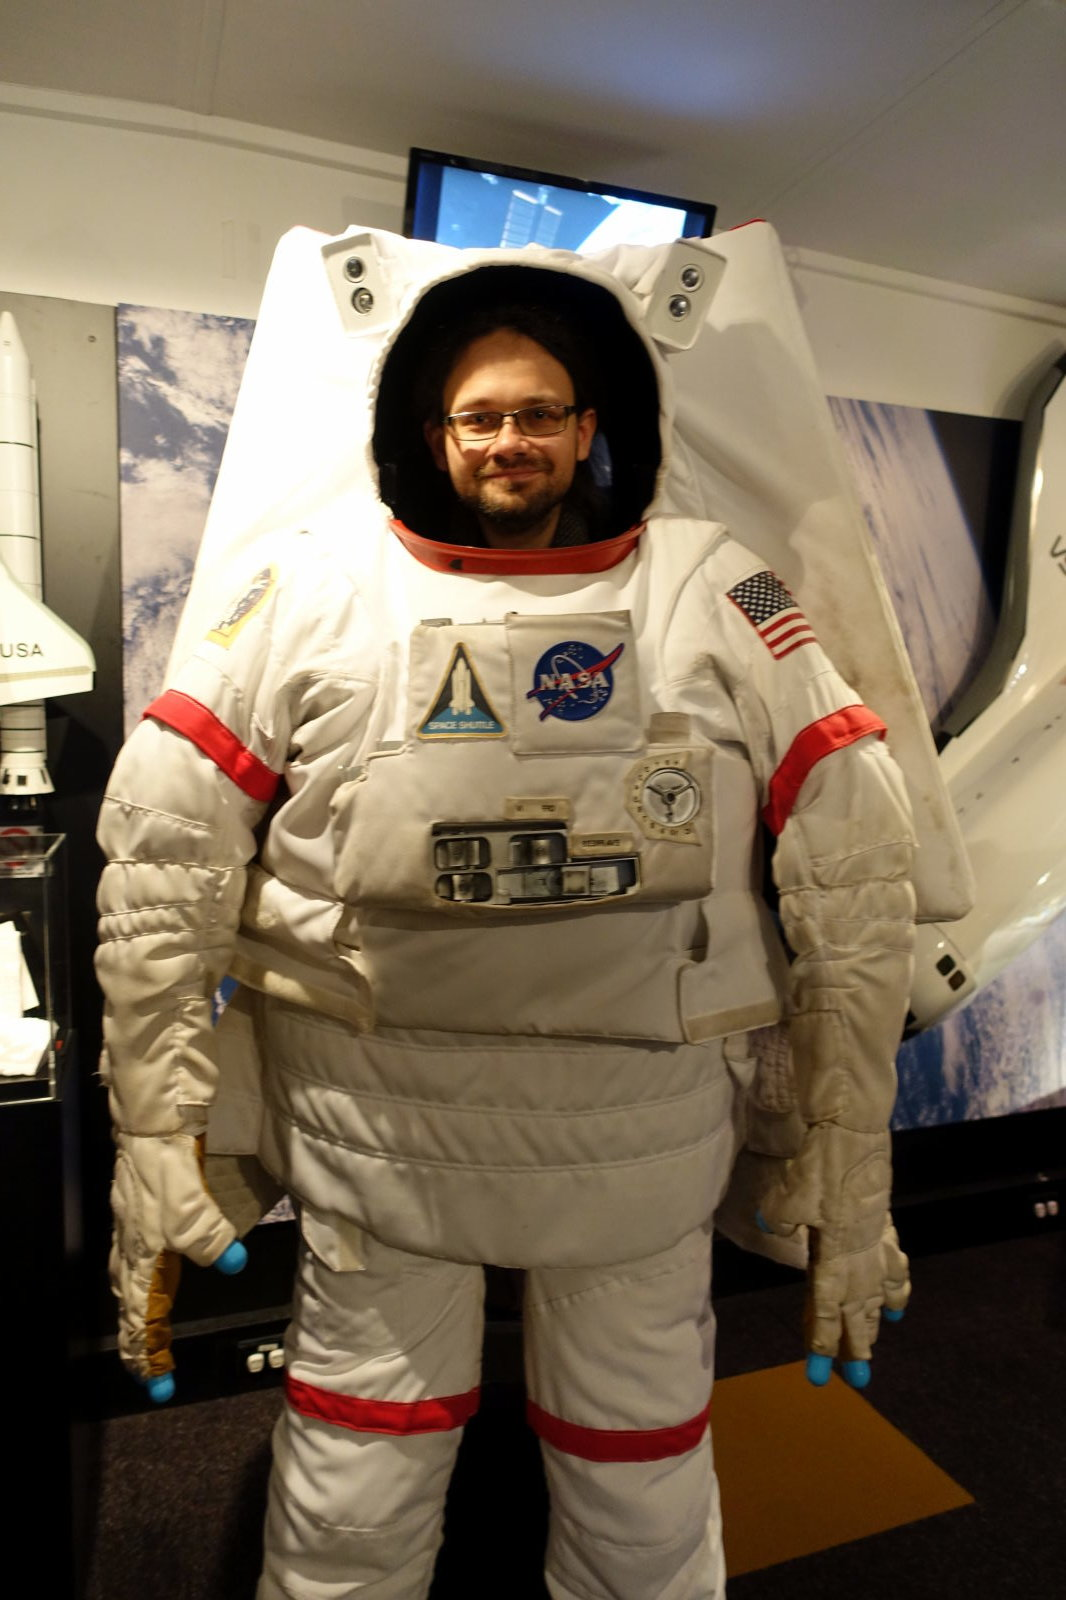 Man posing to the picture in astronaut's suit